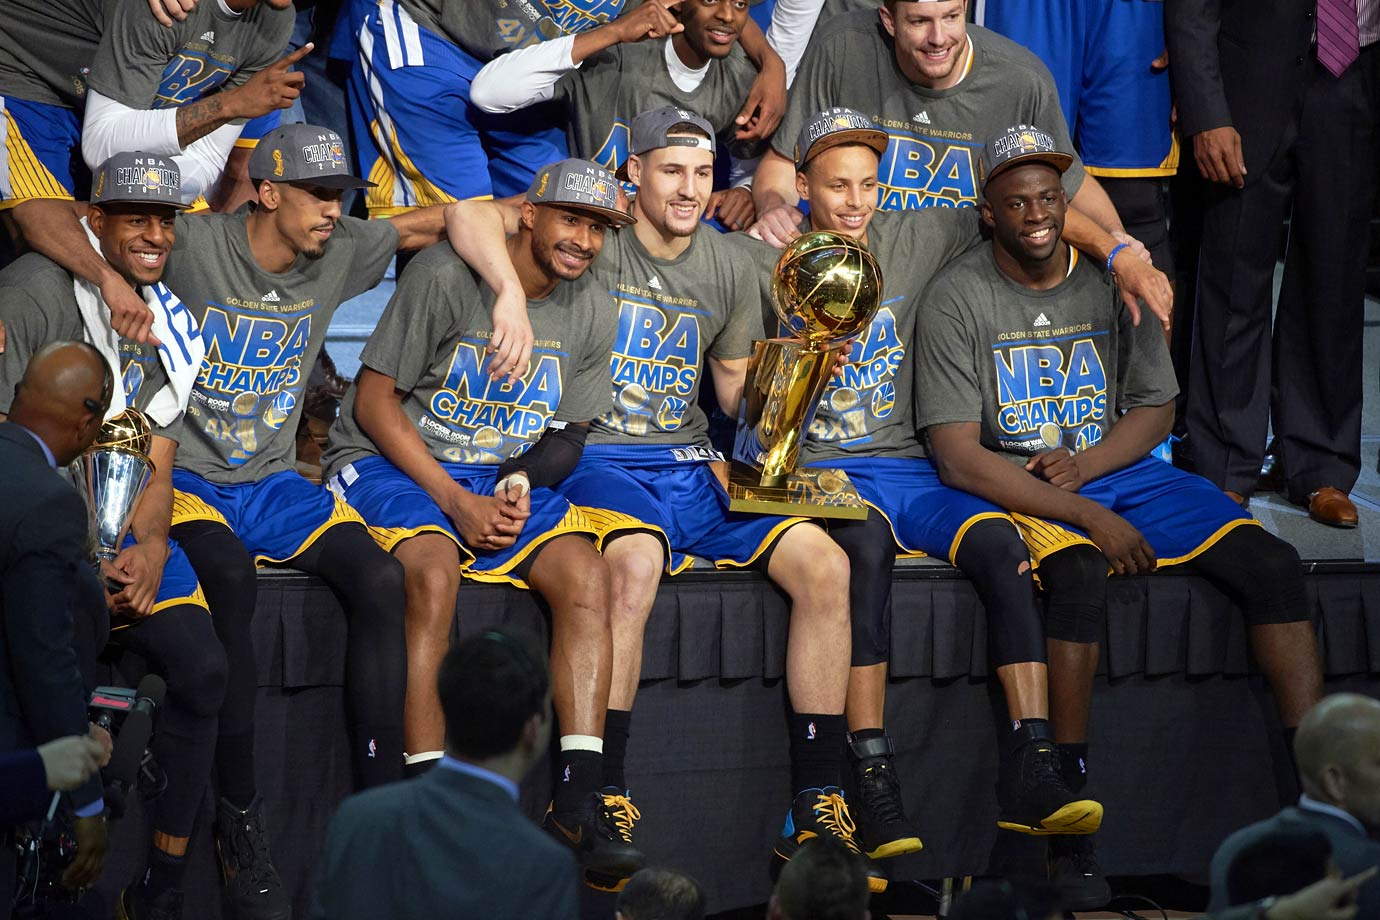 Golden State finished last season as NBA Champions for the first time in 40 years, capping off an amazing MVP season for Stephen Curry. That included Curry breaking his own record for three-pointers in a season, and helping his team go 48-4 at home during the regular season and playoffs. How do they top that? How about starting this season with a 24-game winning streak – destroying the previous record of 15 wins?